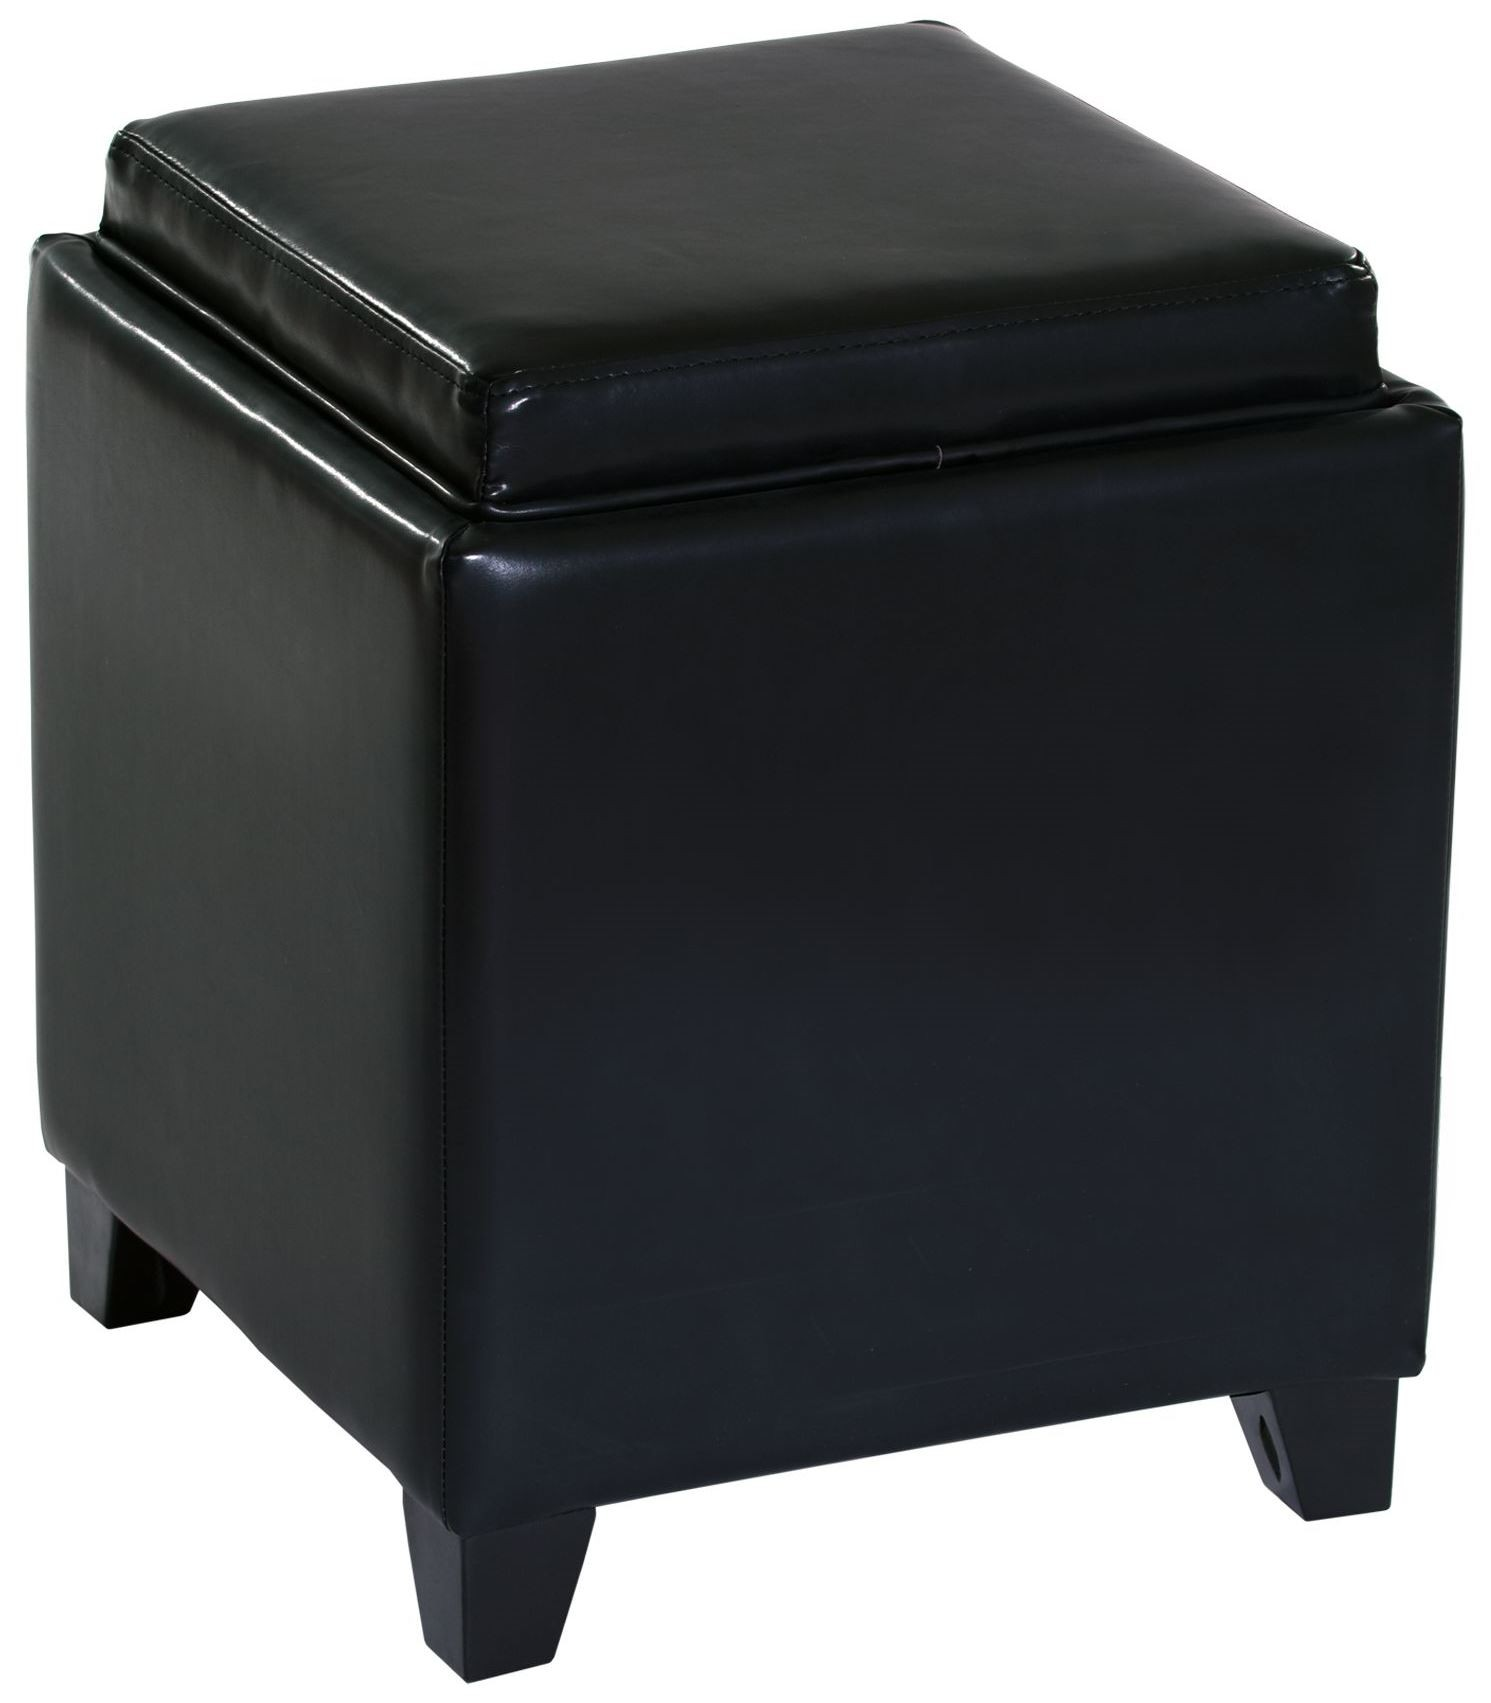 Rainbow Black Bonded Leather Storage Ottoman With Tray